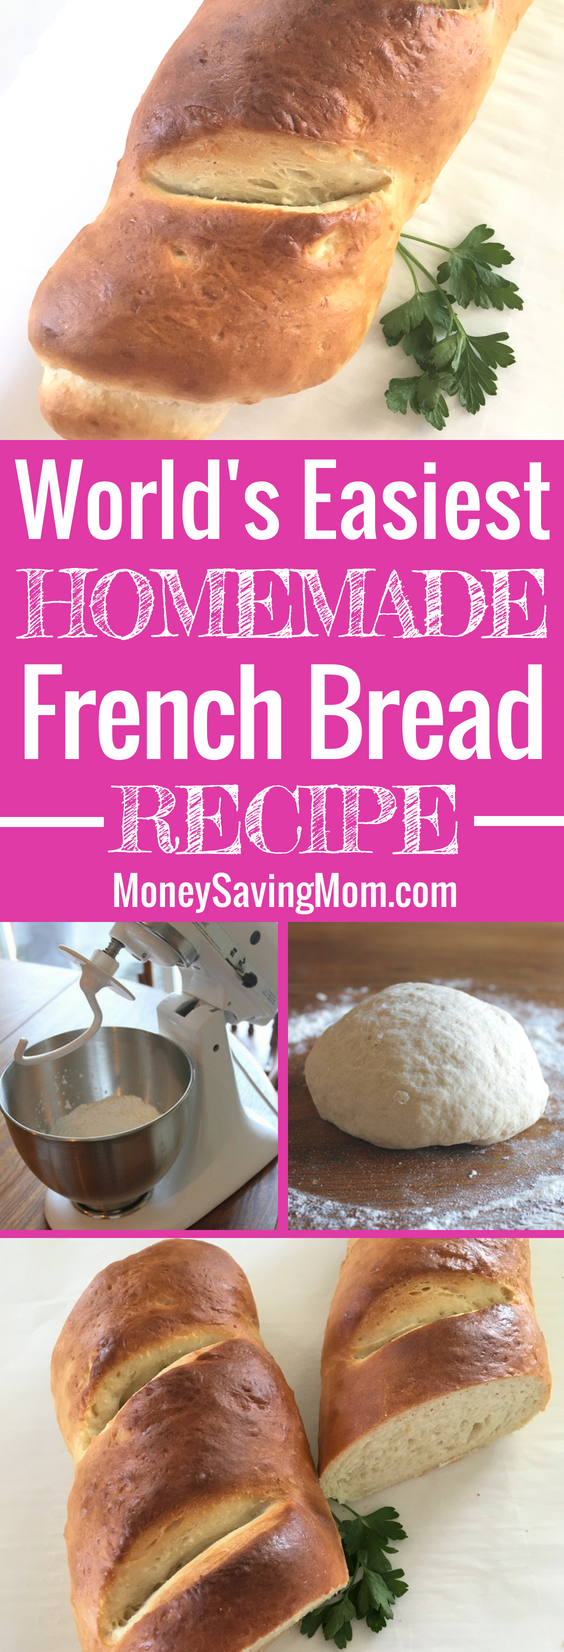 This French Bread recipe is SO easy to make, and it's super delicious -- perfect to whip up for weeknight dinners!